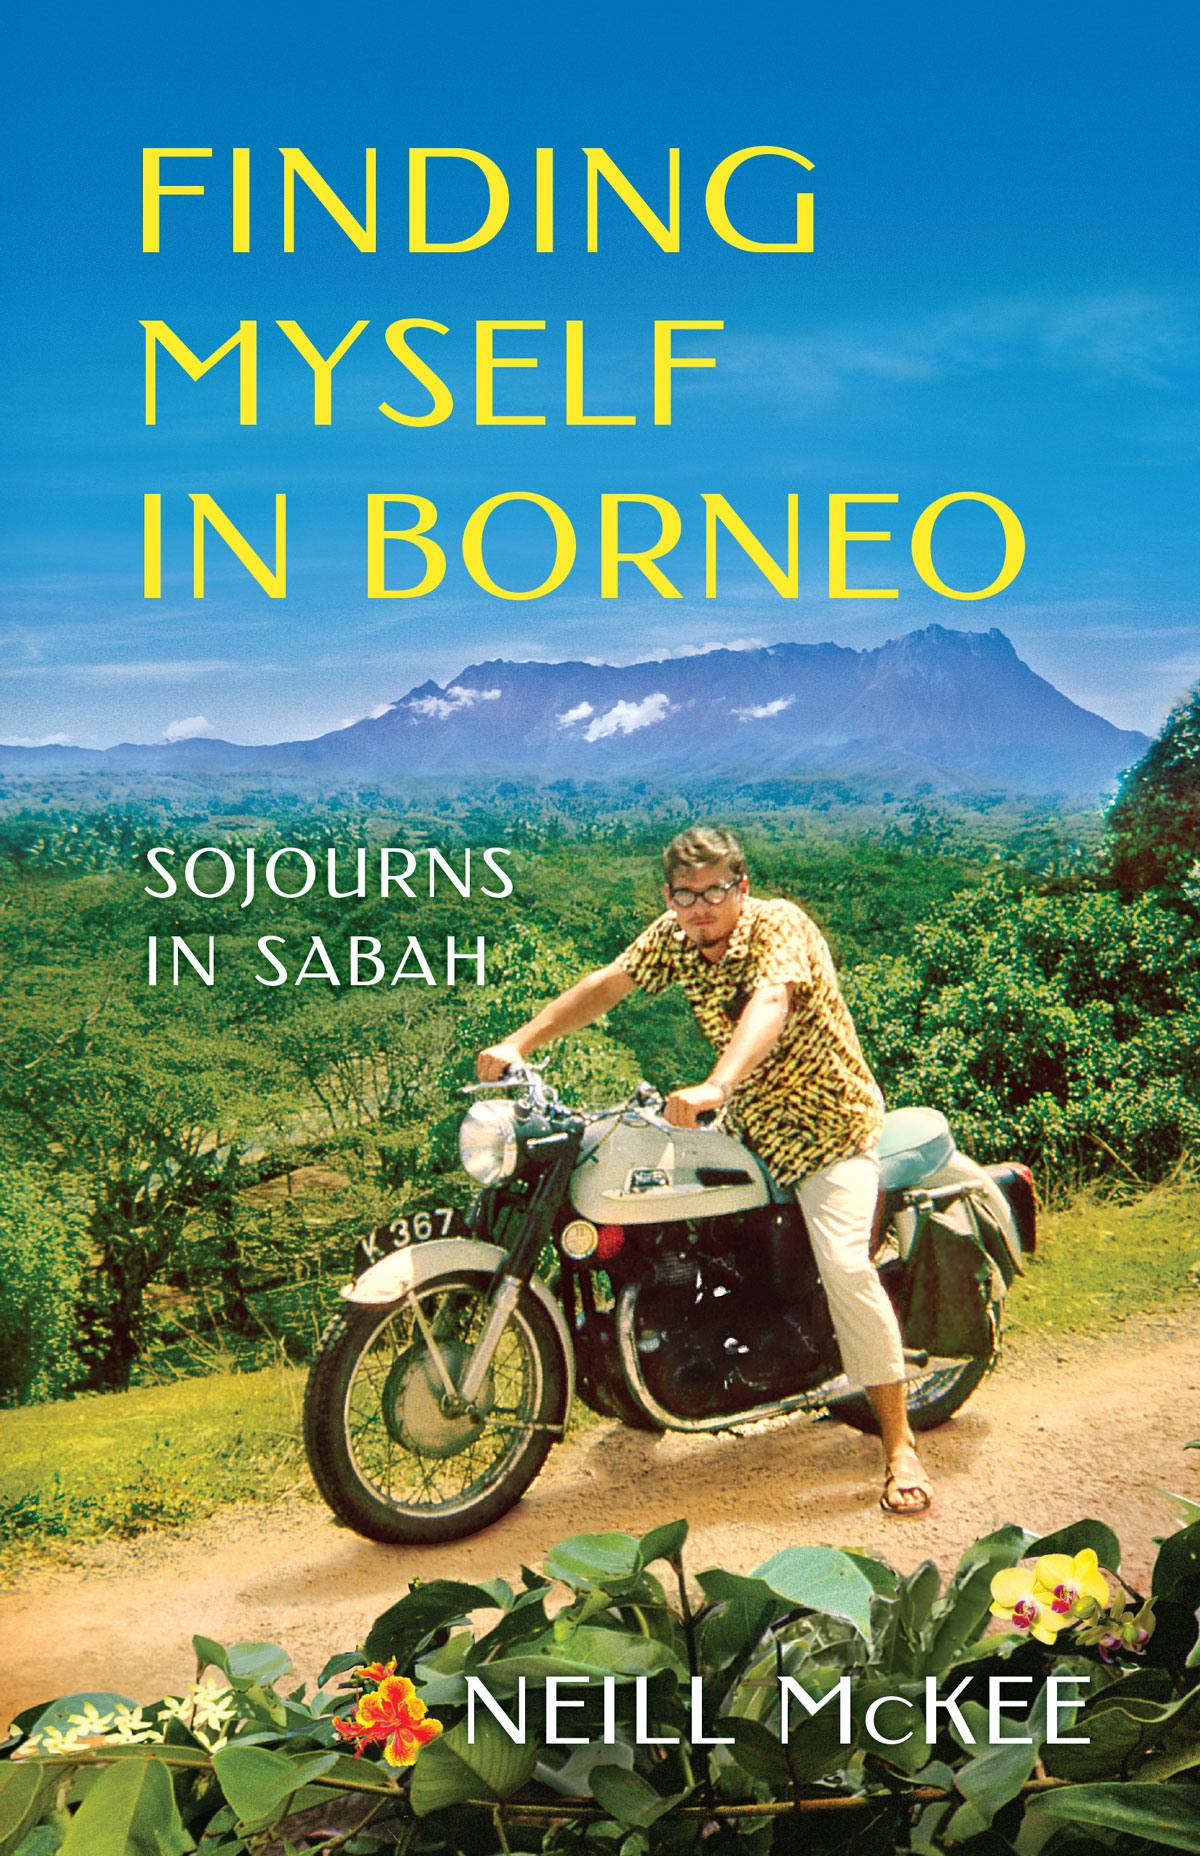 Finding Myself in Borneo: Sojourns in Sabah